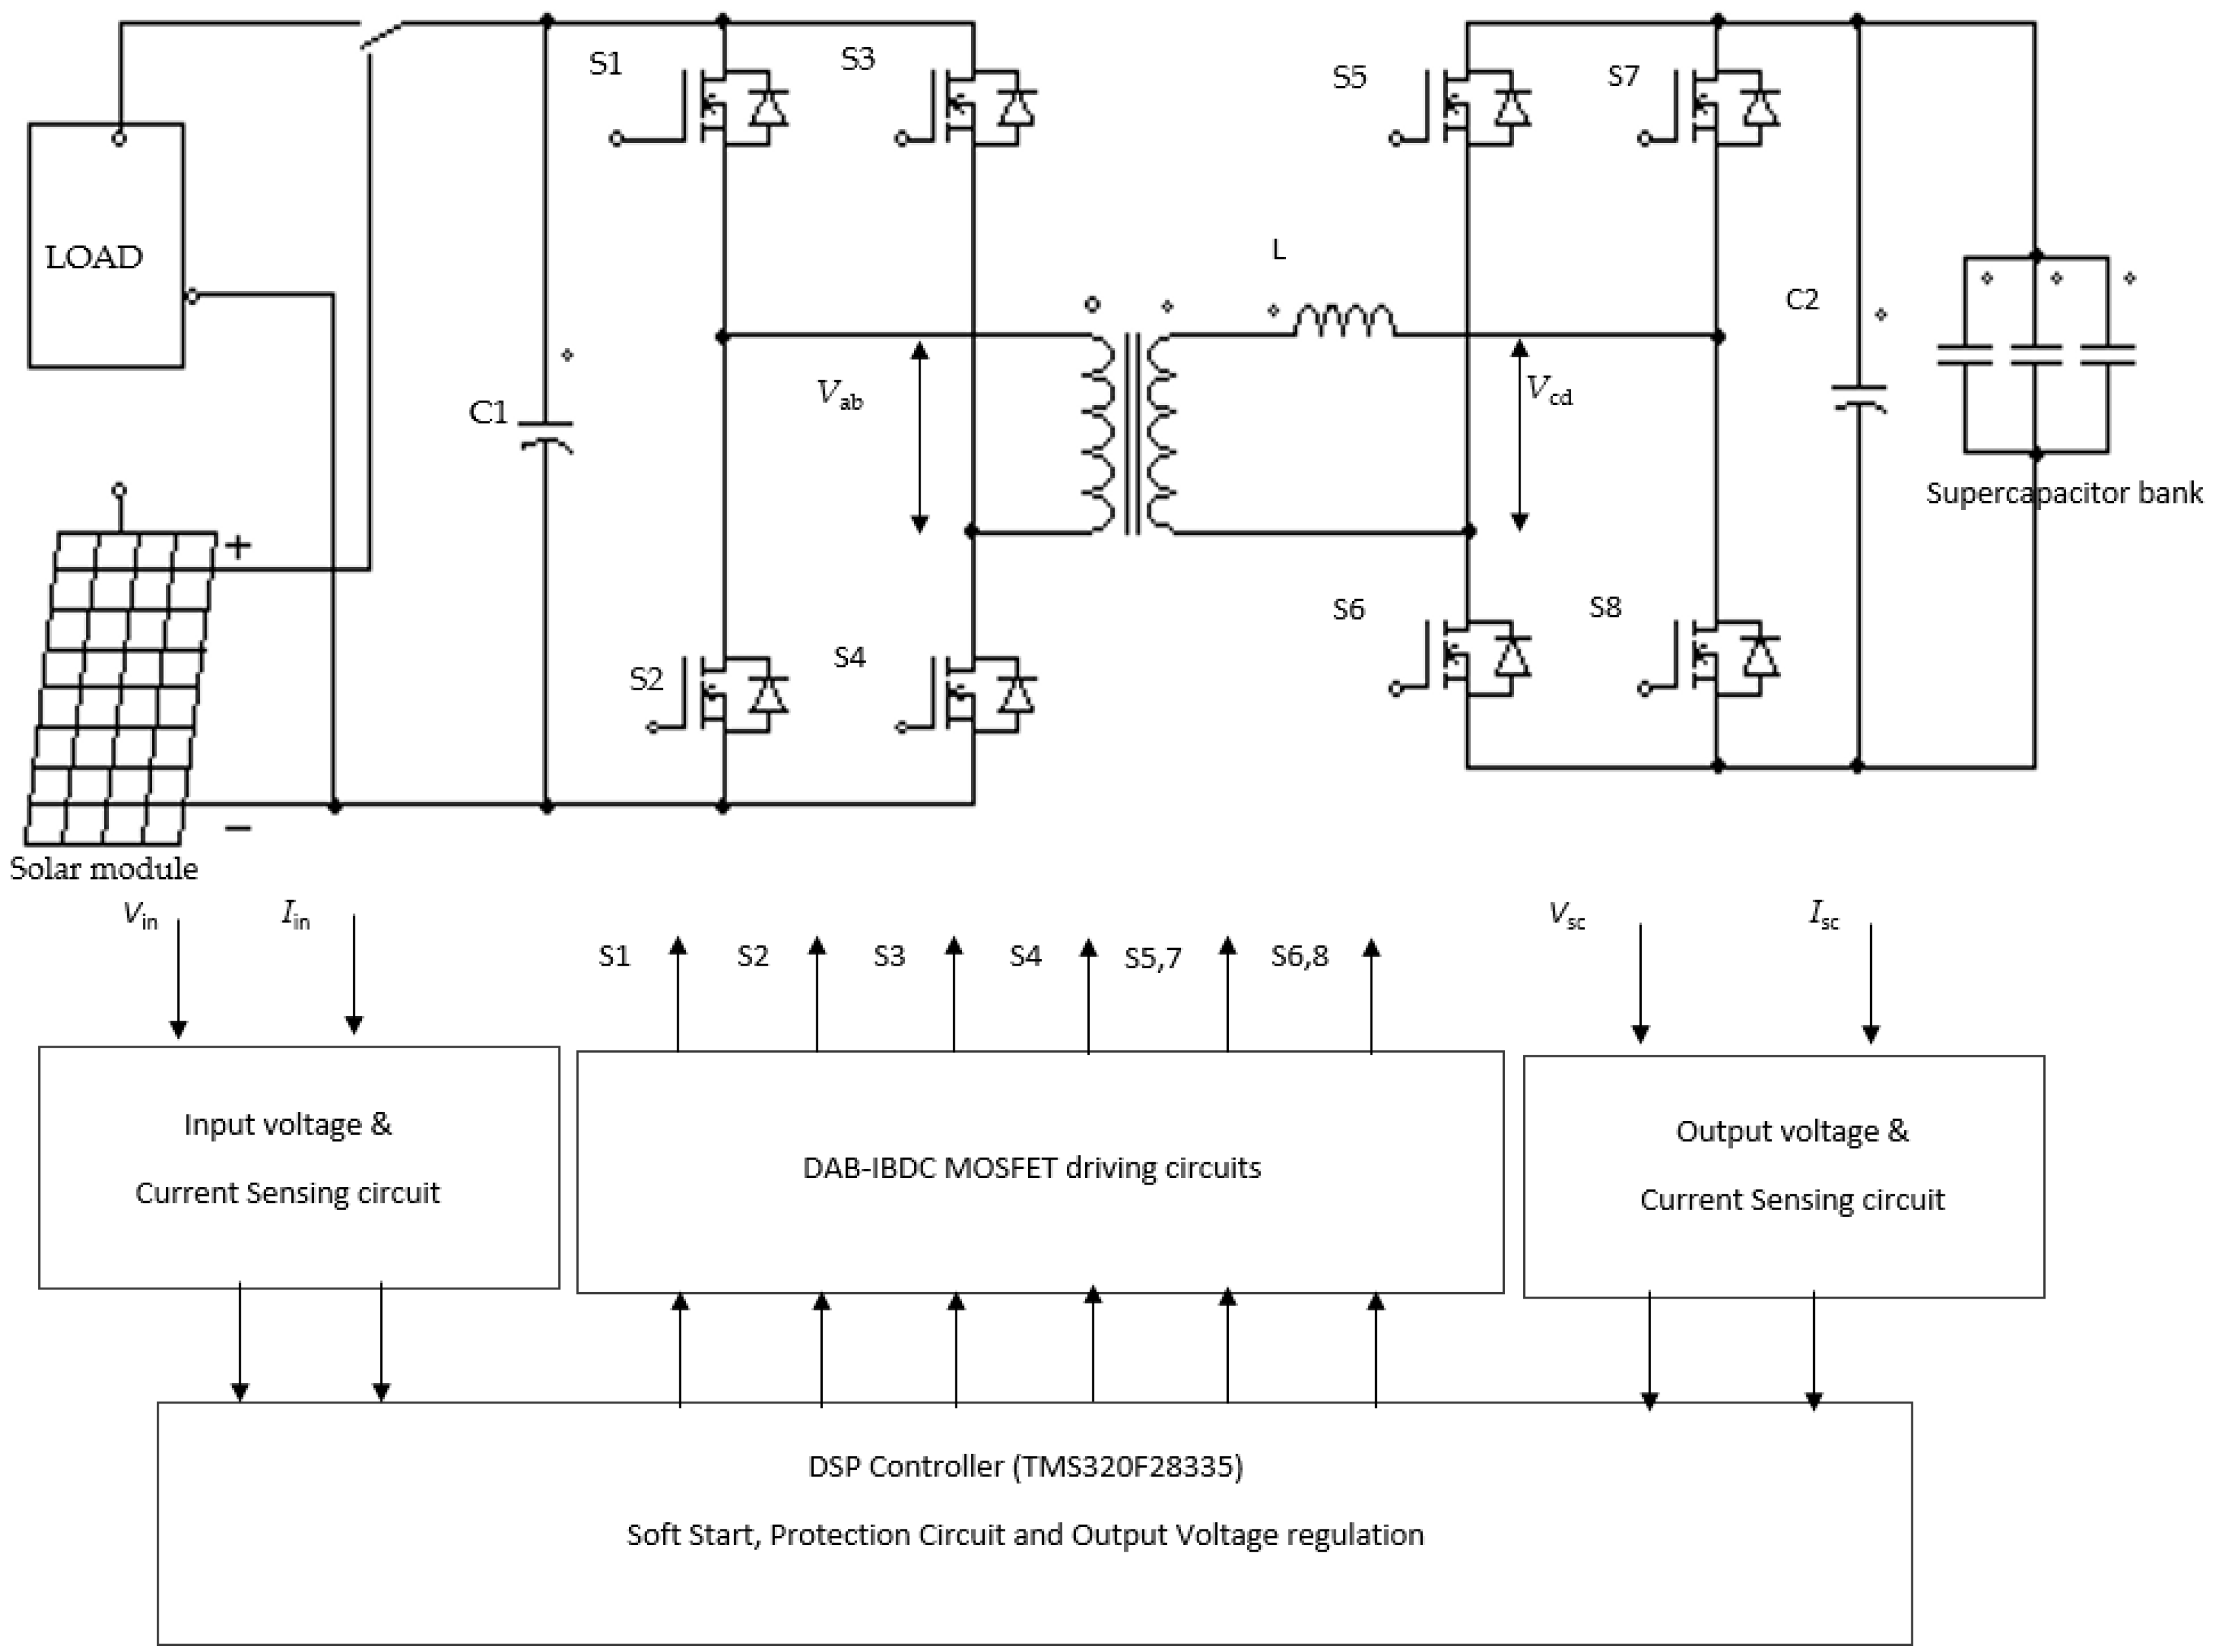 Energies Free Full Text A Blended Sps Esps Control Dab Ibdc Voltage Converter Wiring Diagram 10 01431 G002